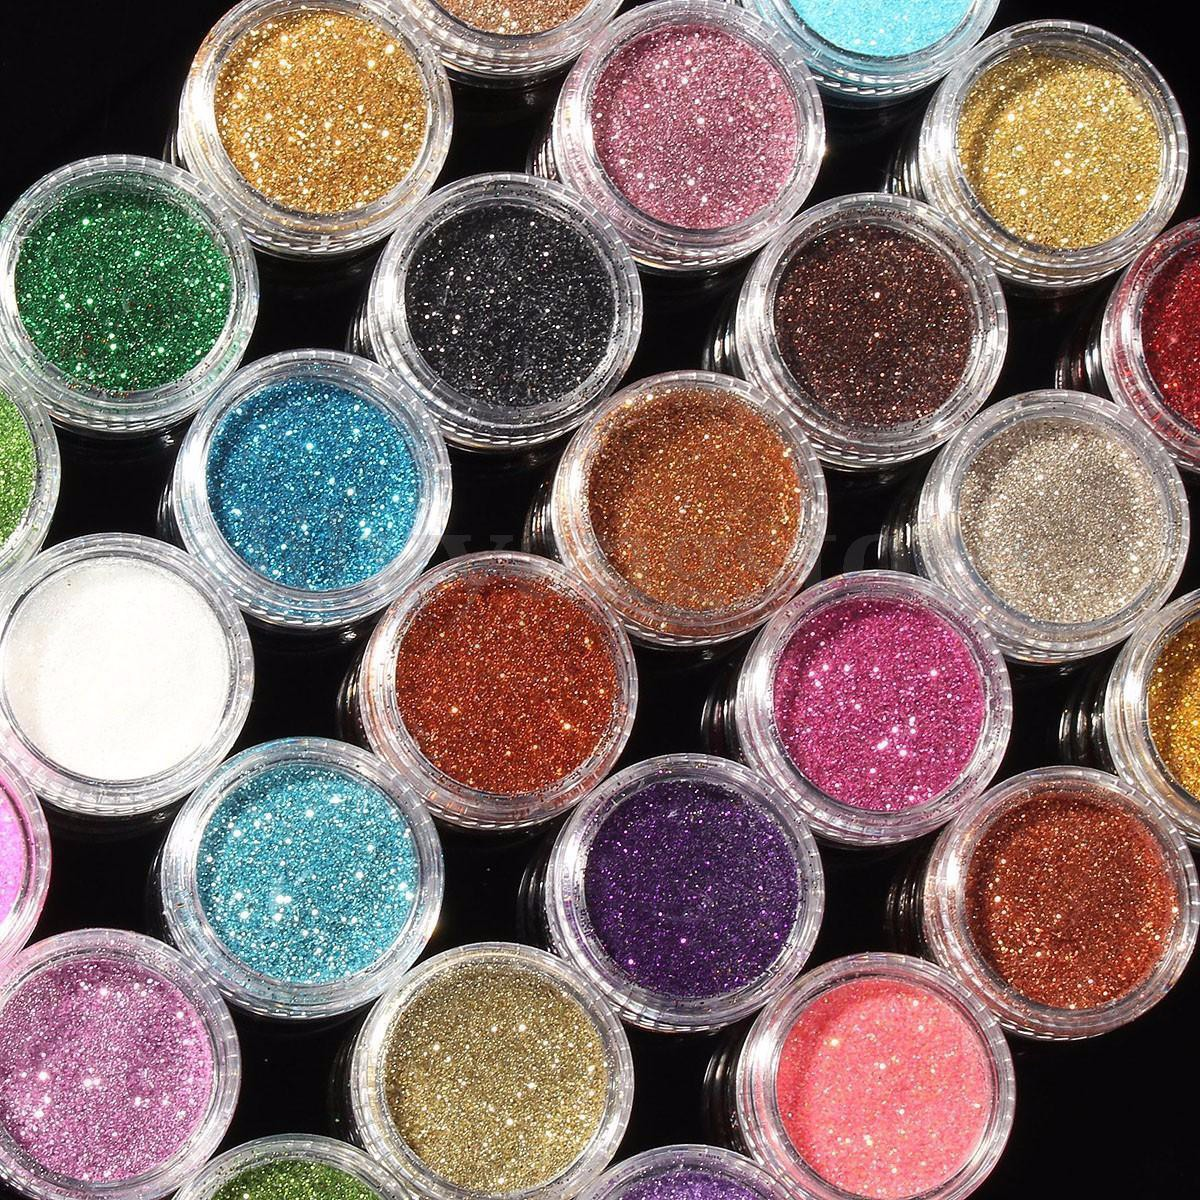 24 Loose Glitter Eyeshadow Eye shadow Face Body Painting Paint Craft ...